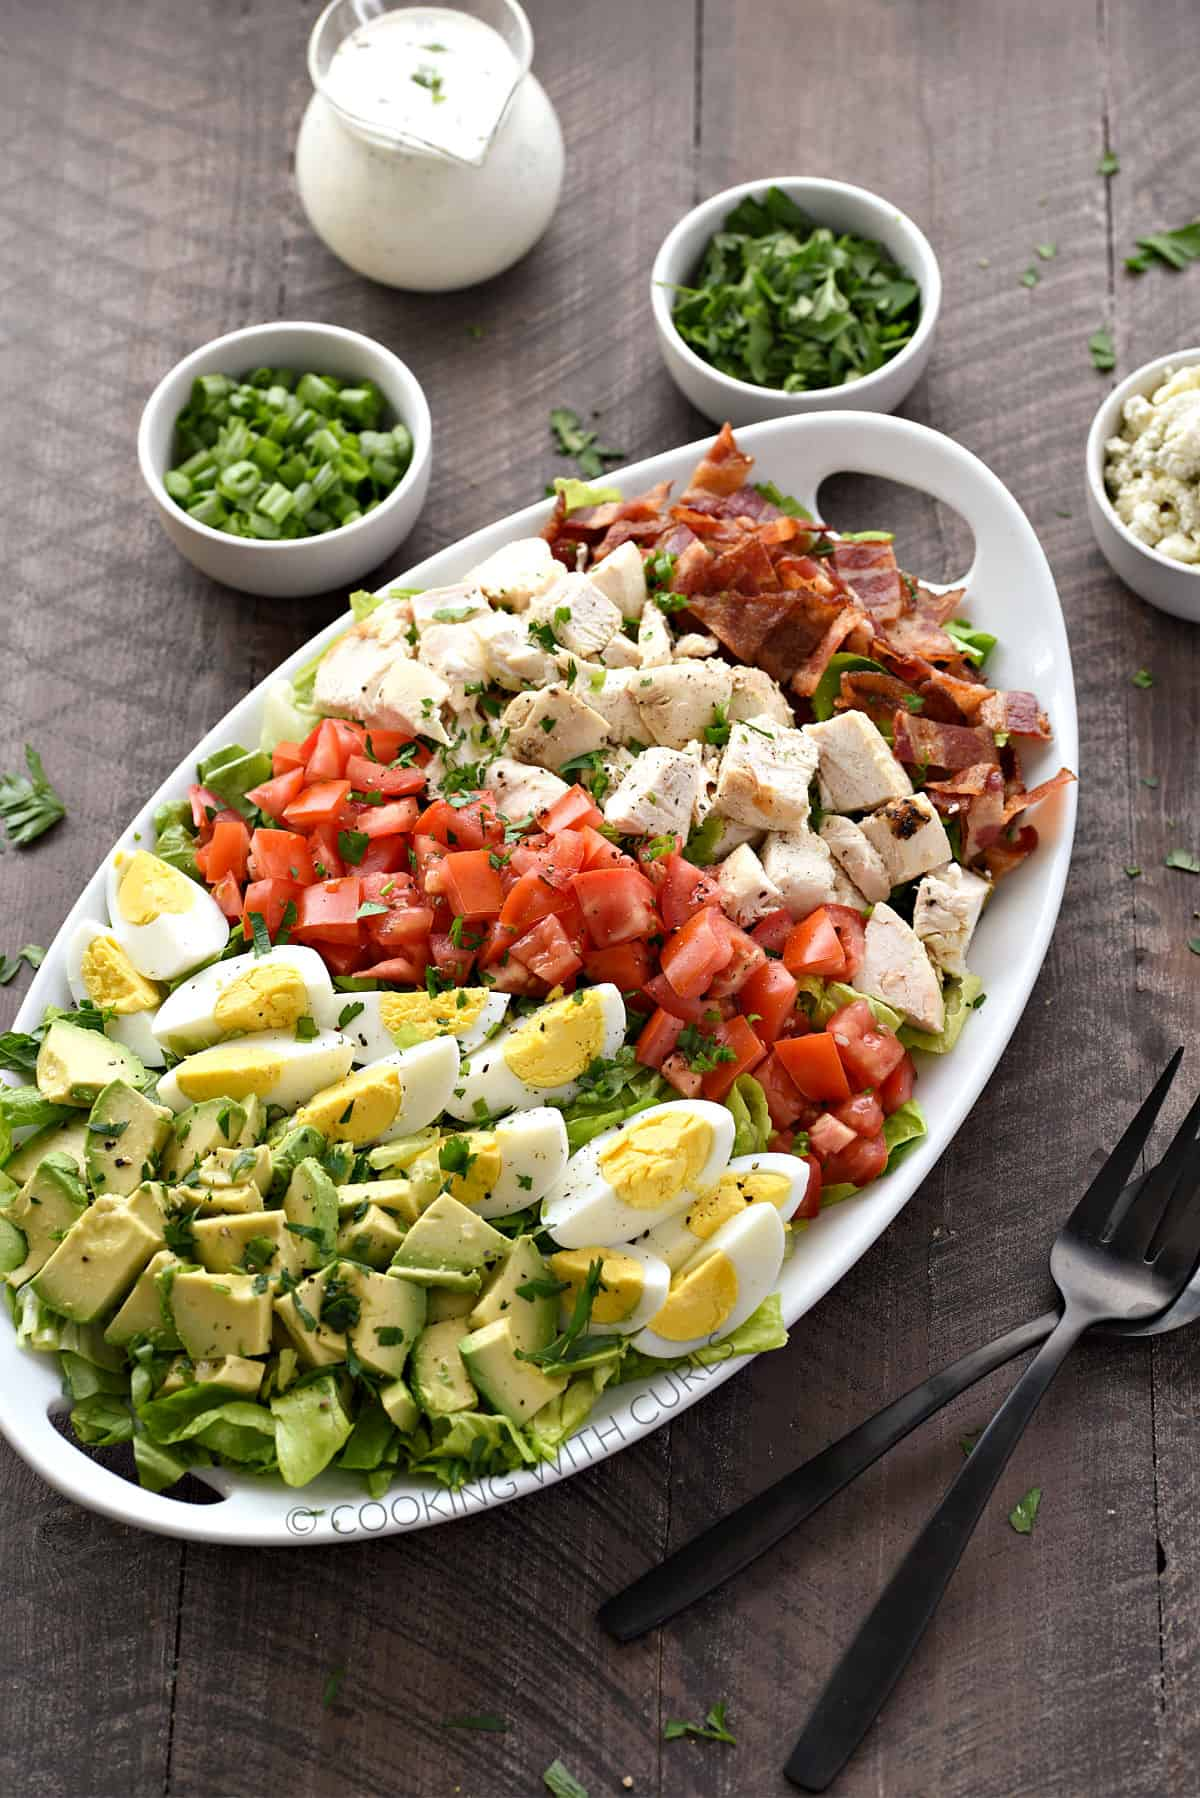 Chopped avocado, hard-boiled eggs, tomatoes, chicken, and bacon on a bed of lettuce with green onions, parsley, crumbled blue cheese, and ranch dressing in the background